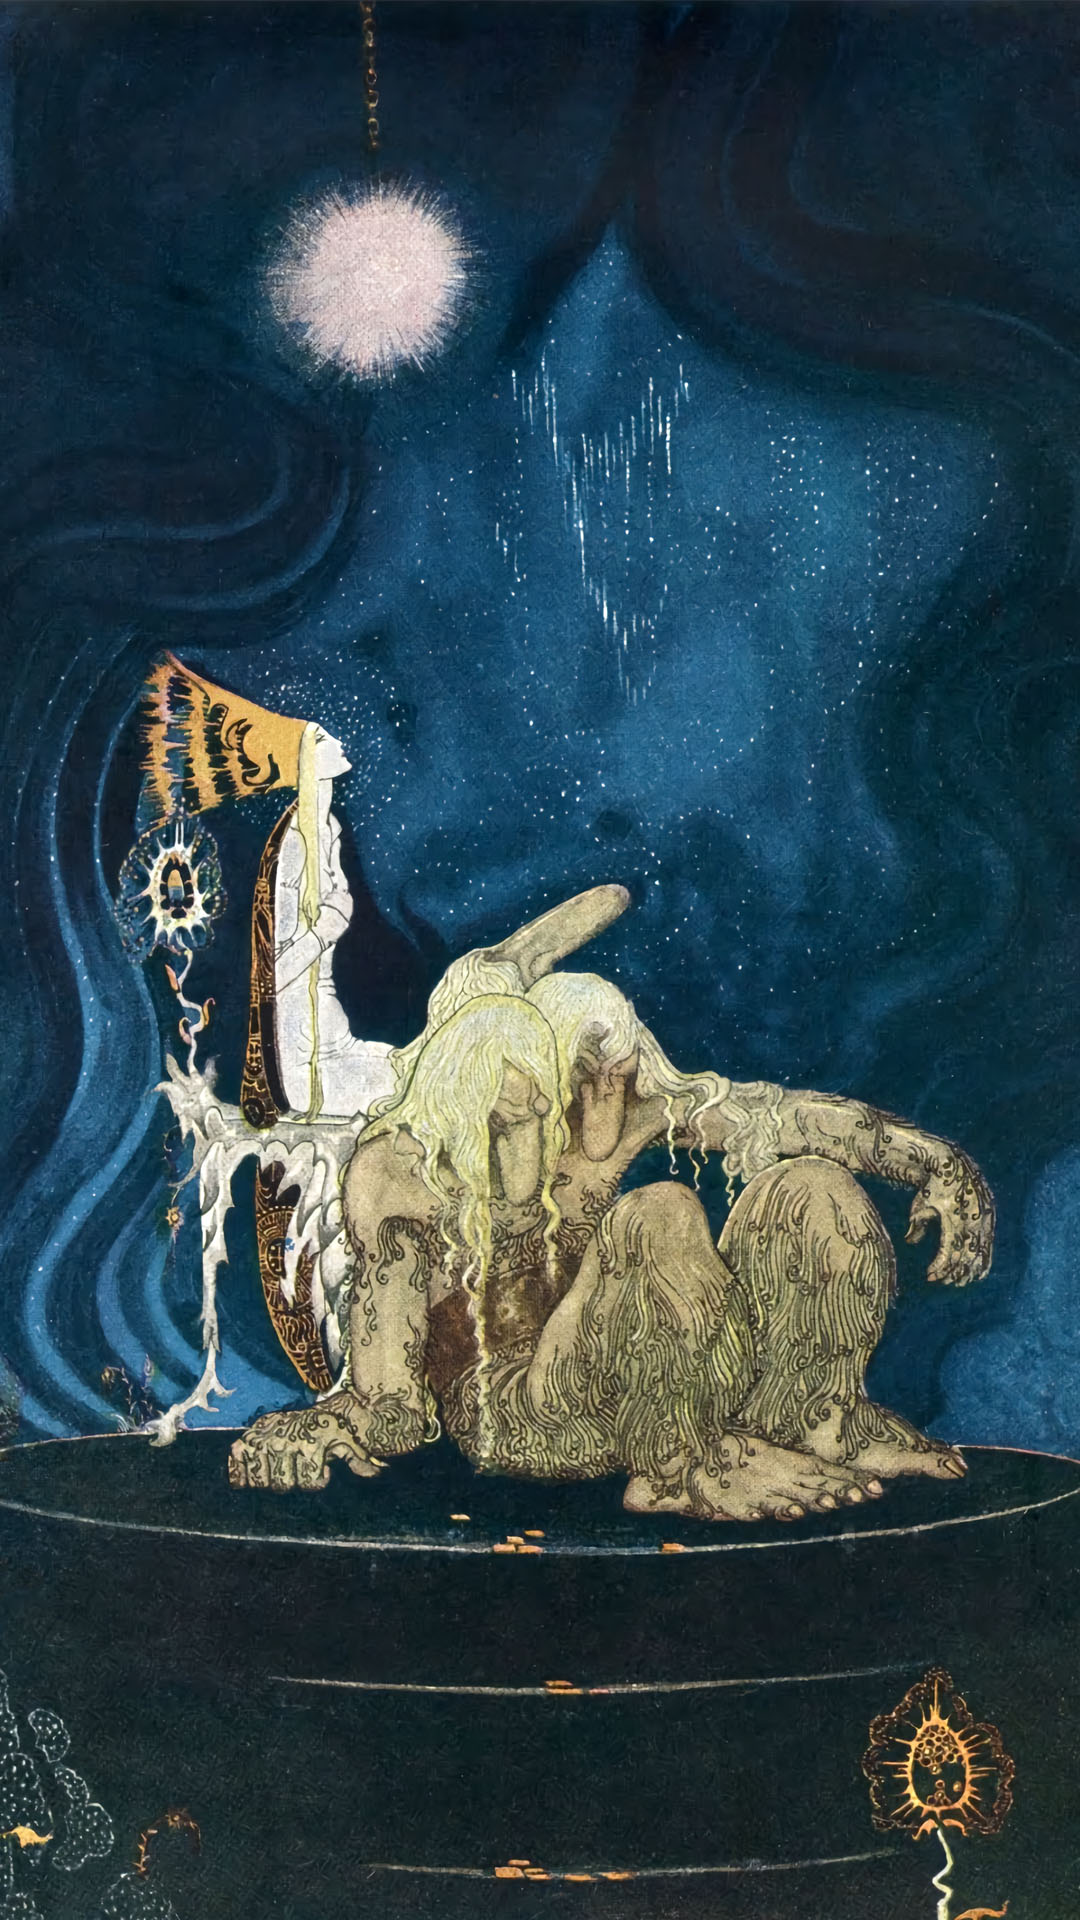 Kay Nielsen - East of the Sun and West of the Moon - old tales from the North 1080x1920